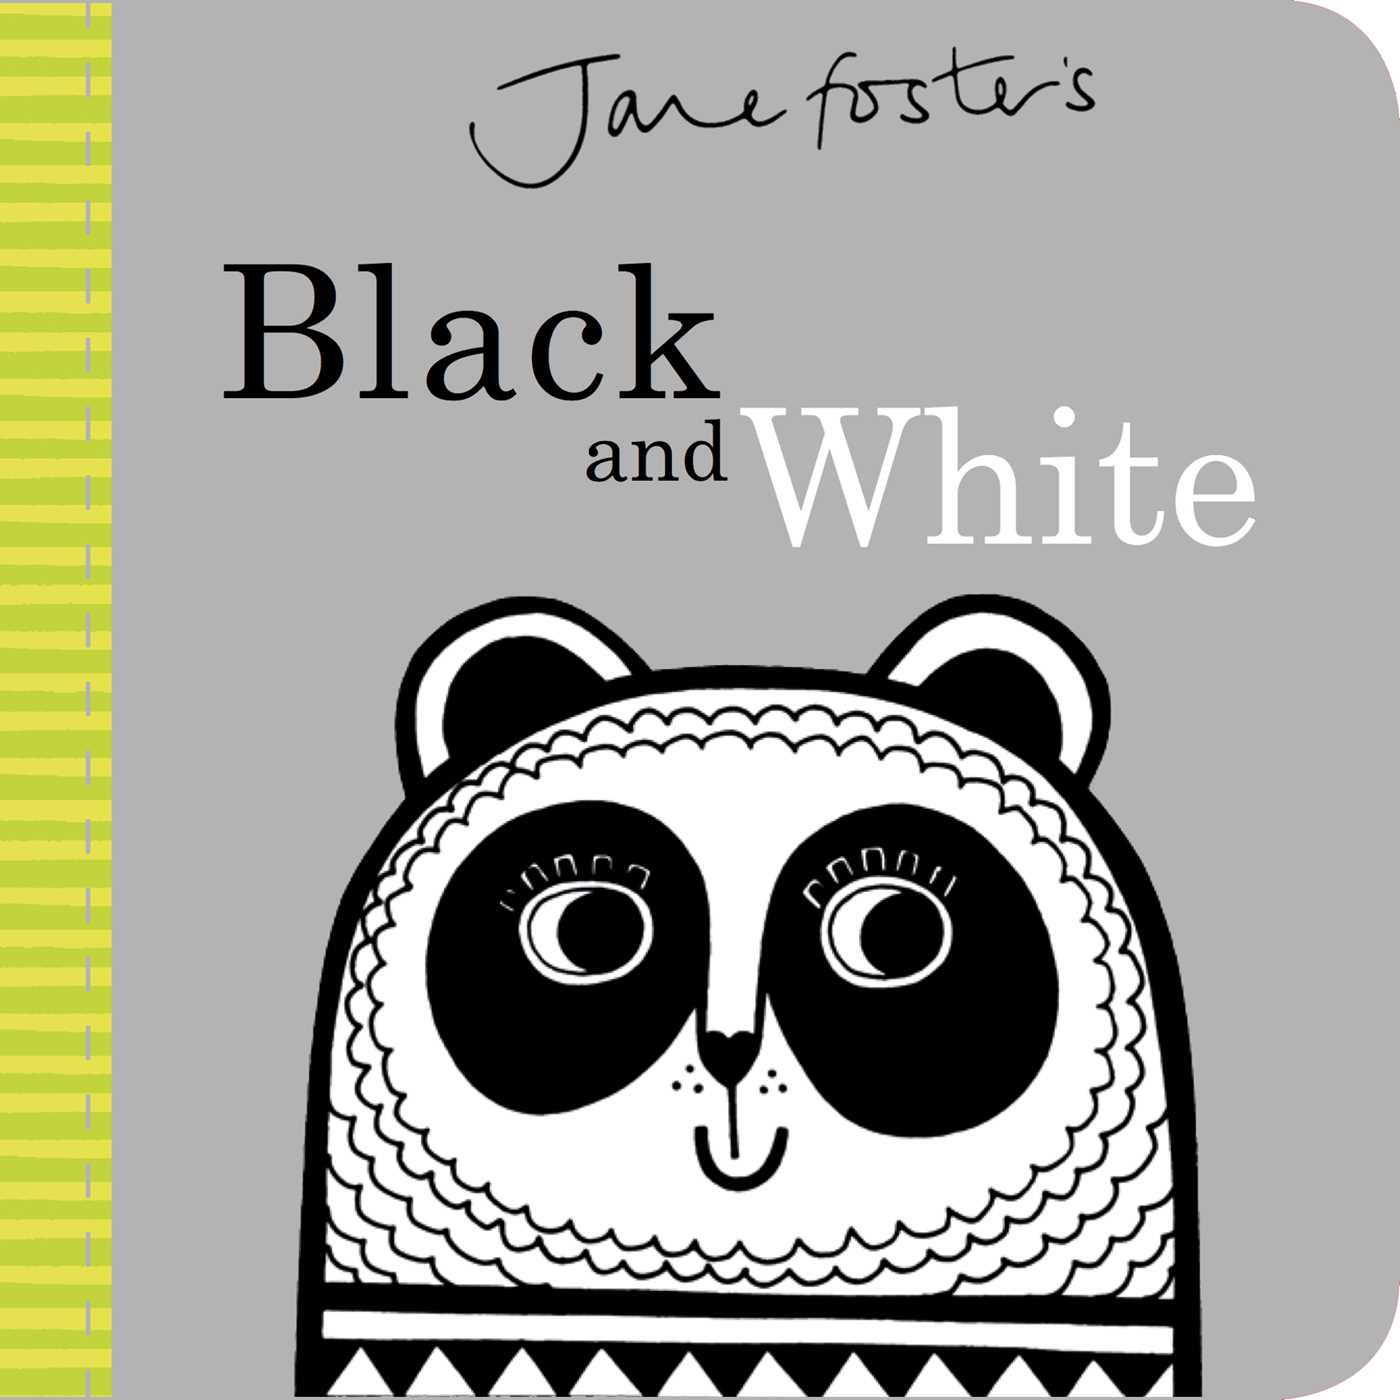 Jane Foster's Black and White (Board Book)